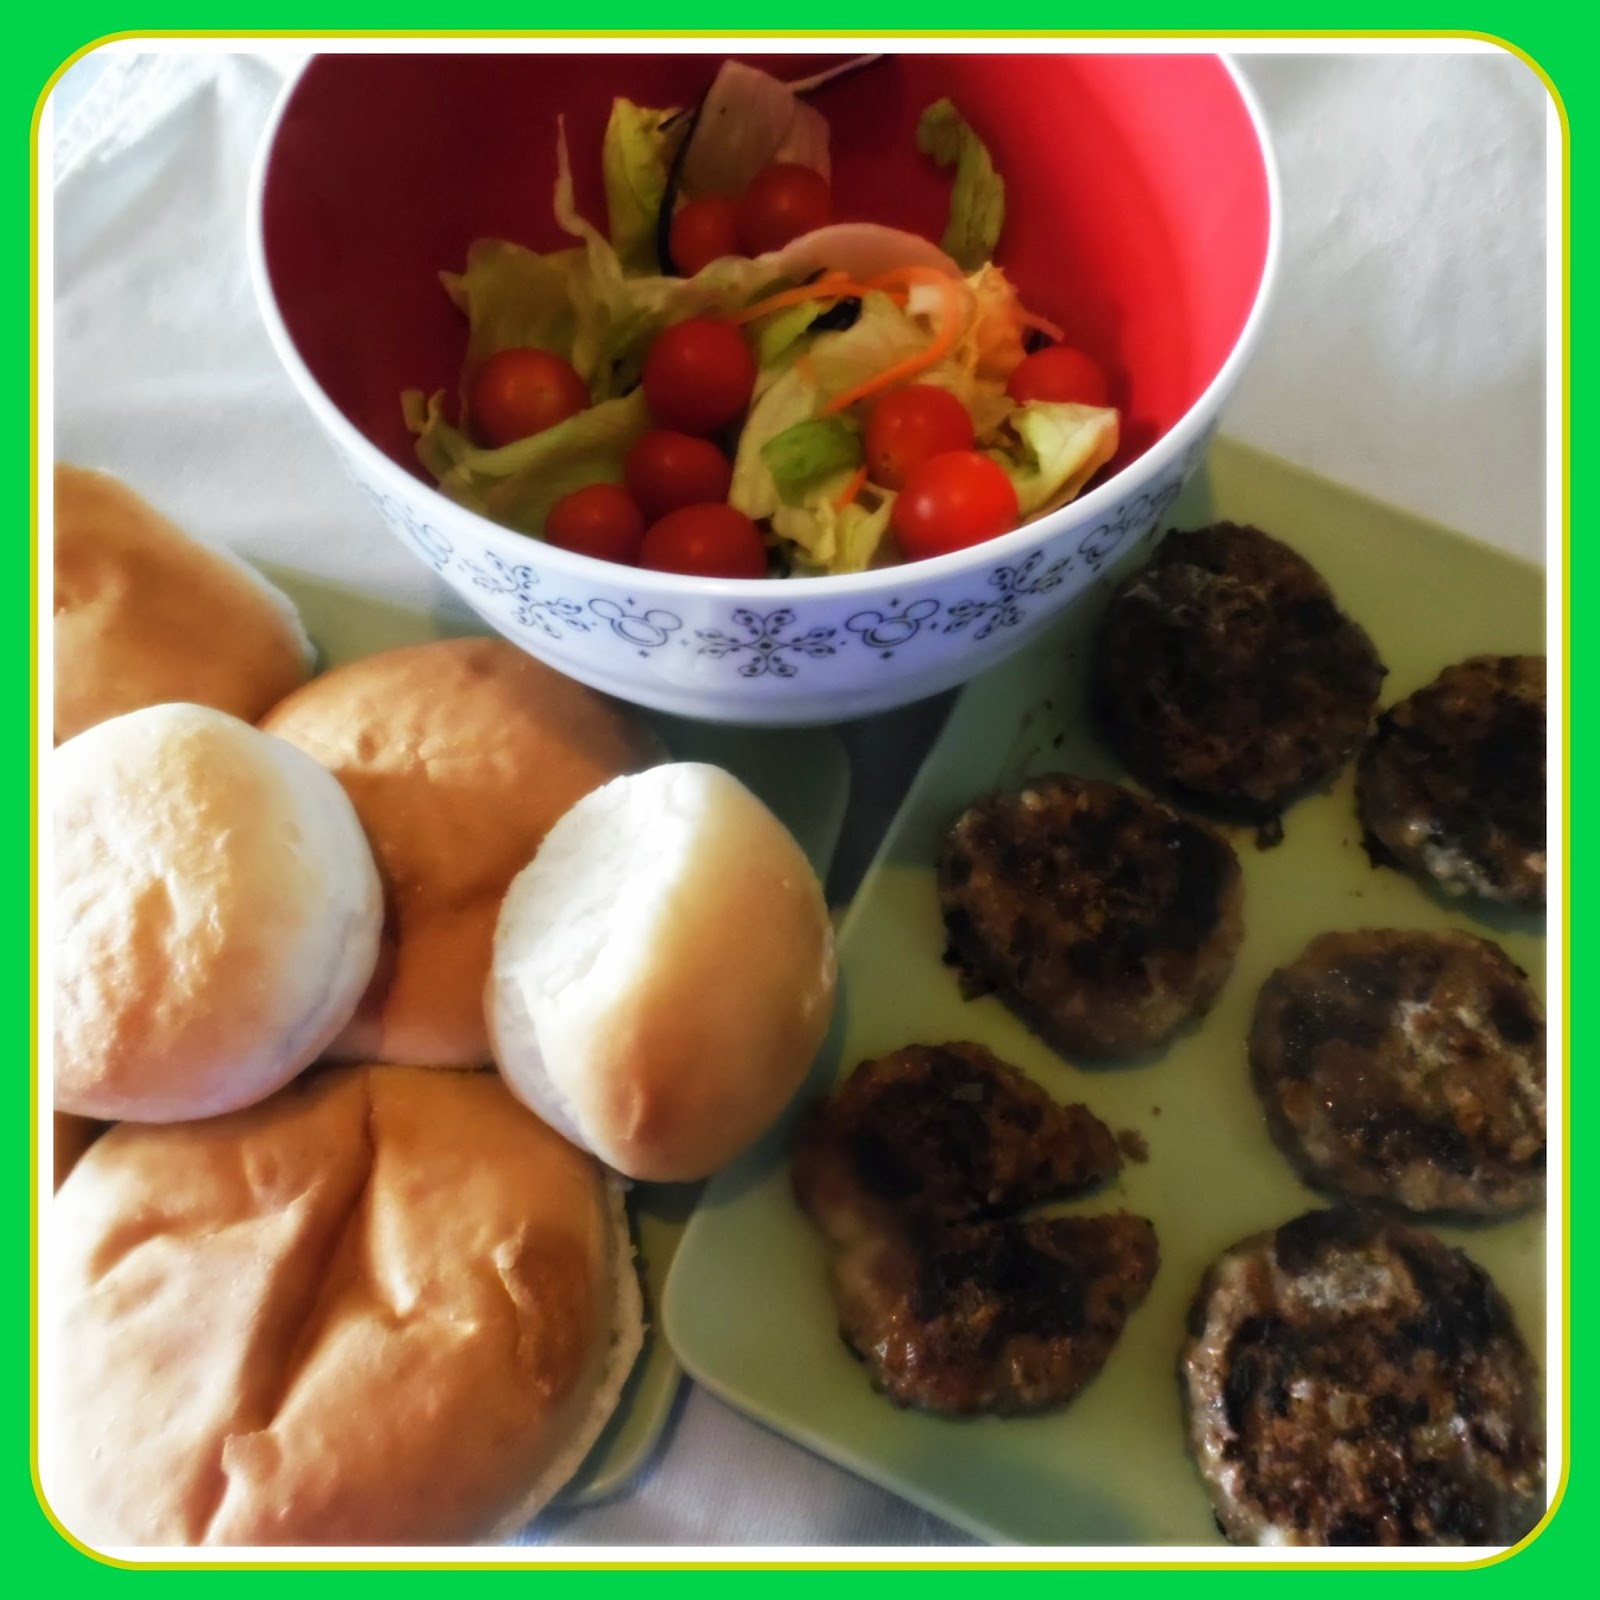 Homemade Healthy Burgers